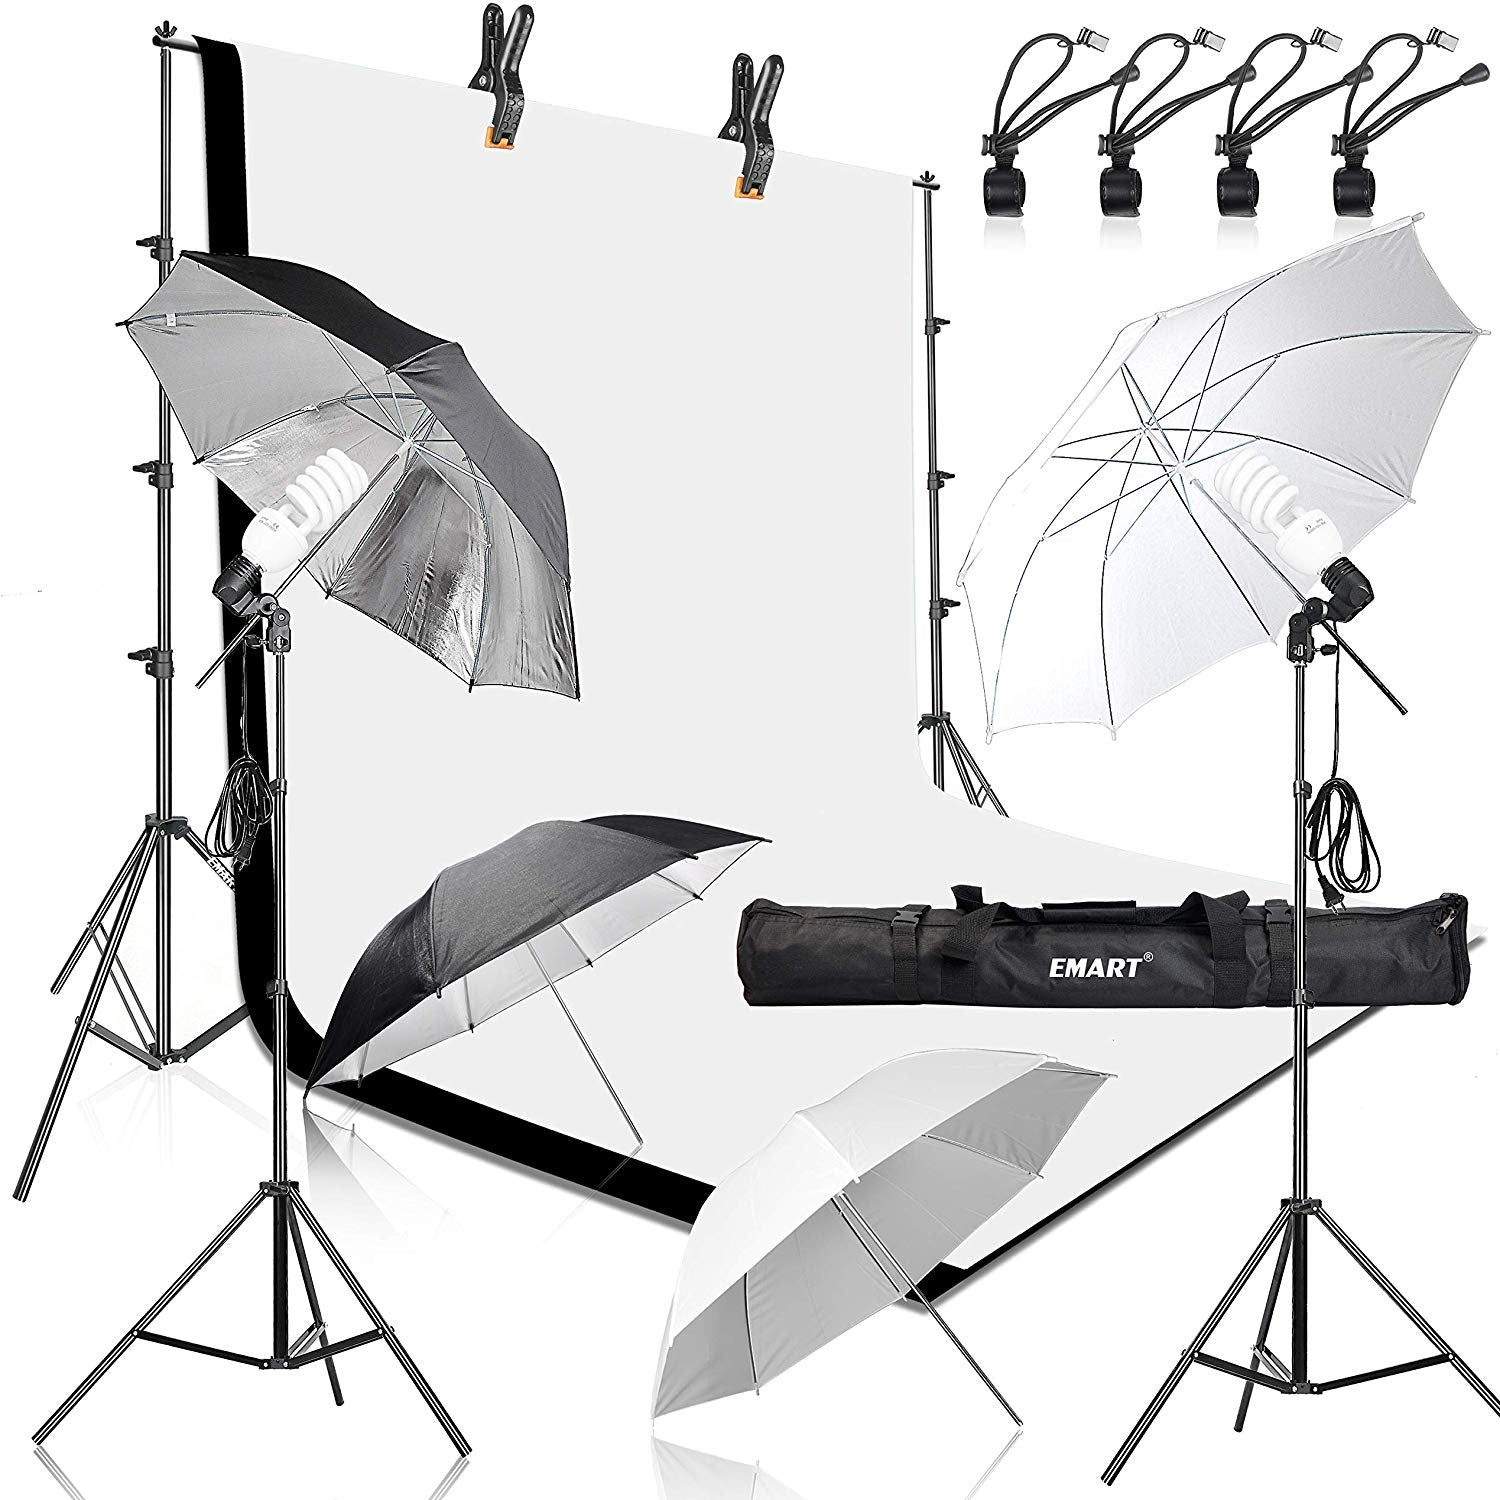 Emart 400W 5500K Daylight Umbrella Continuous Lighting Kit, 8.5x10ft Background